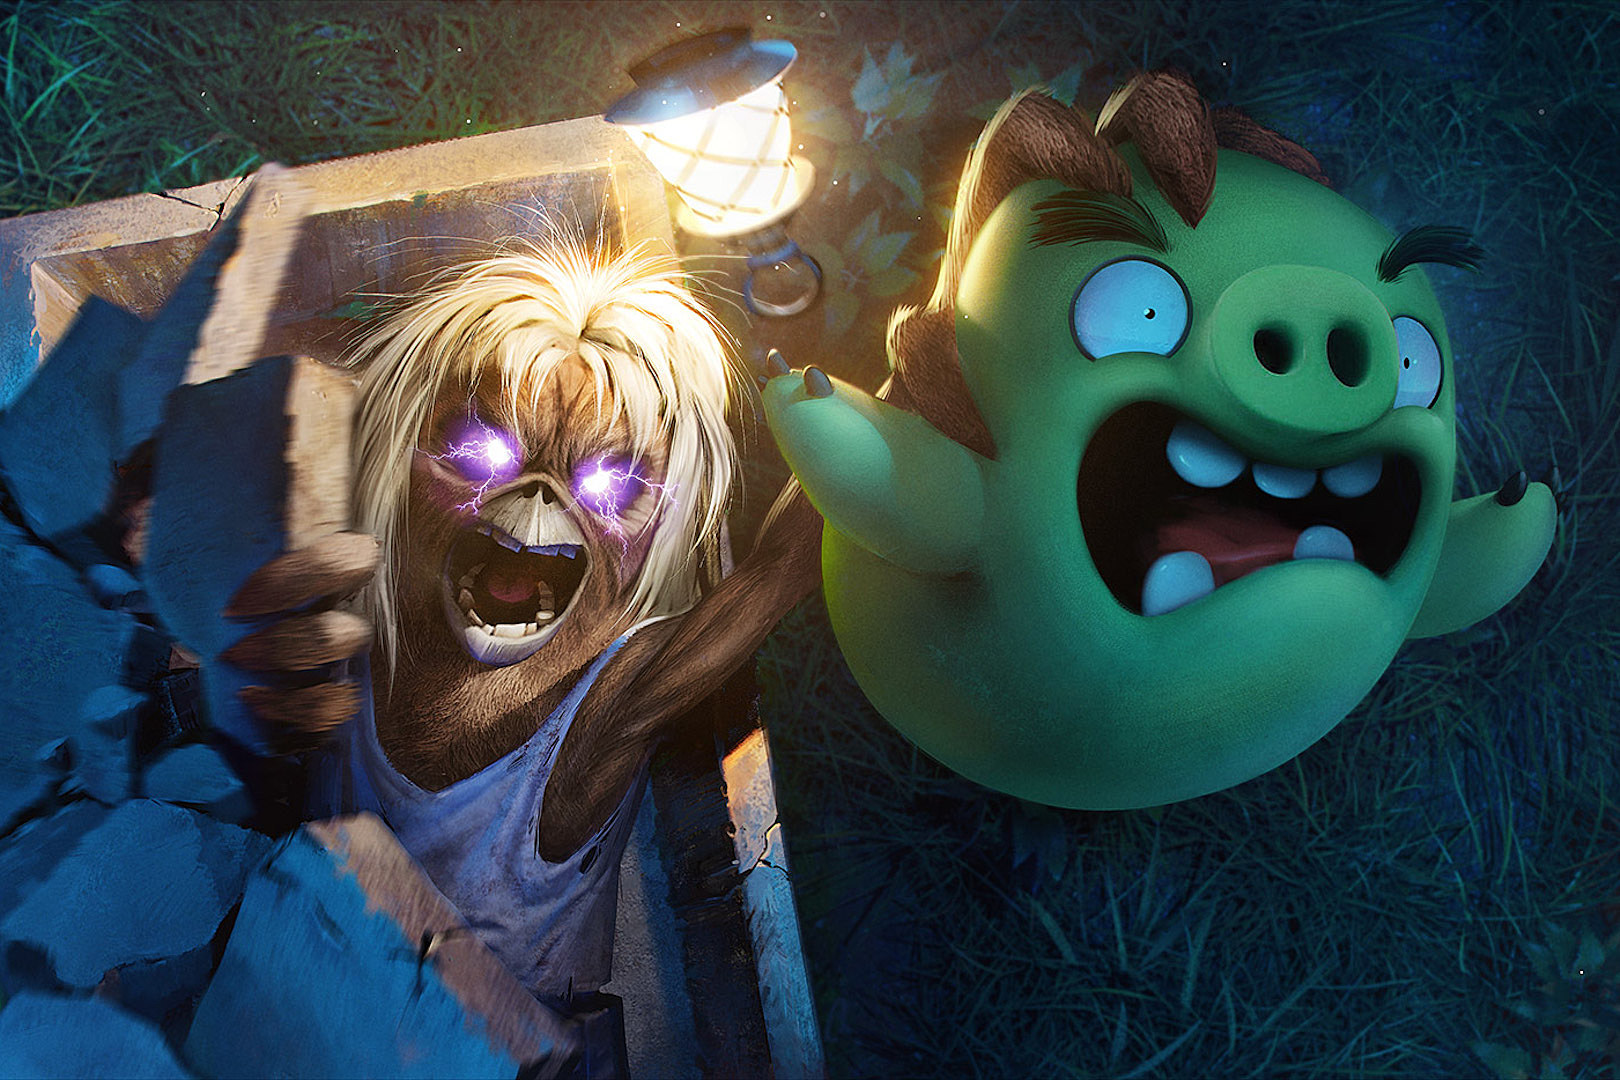 'Angry Birds' Honor Iron Maiden With Playable 'Eddie the Bird' Characters